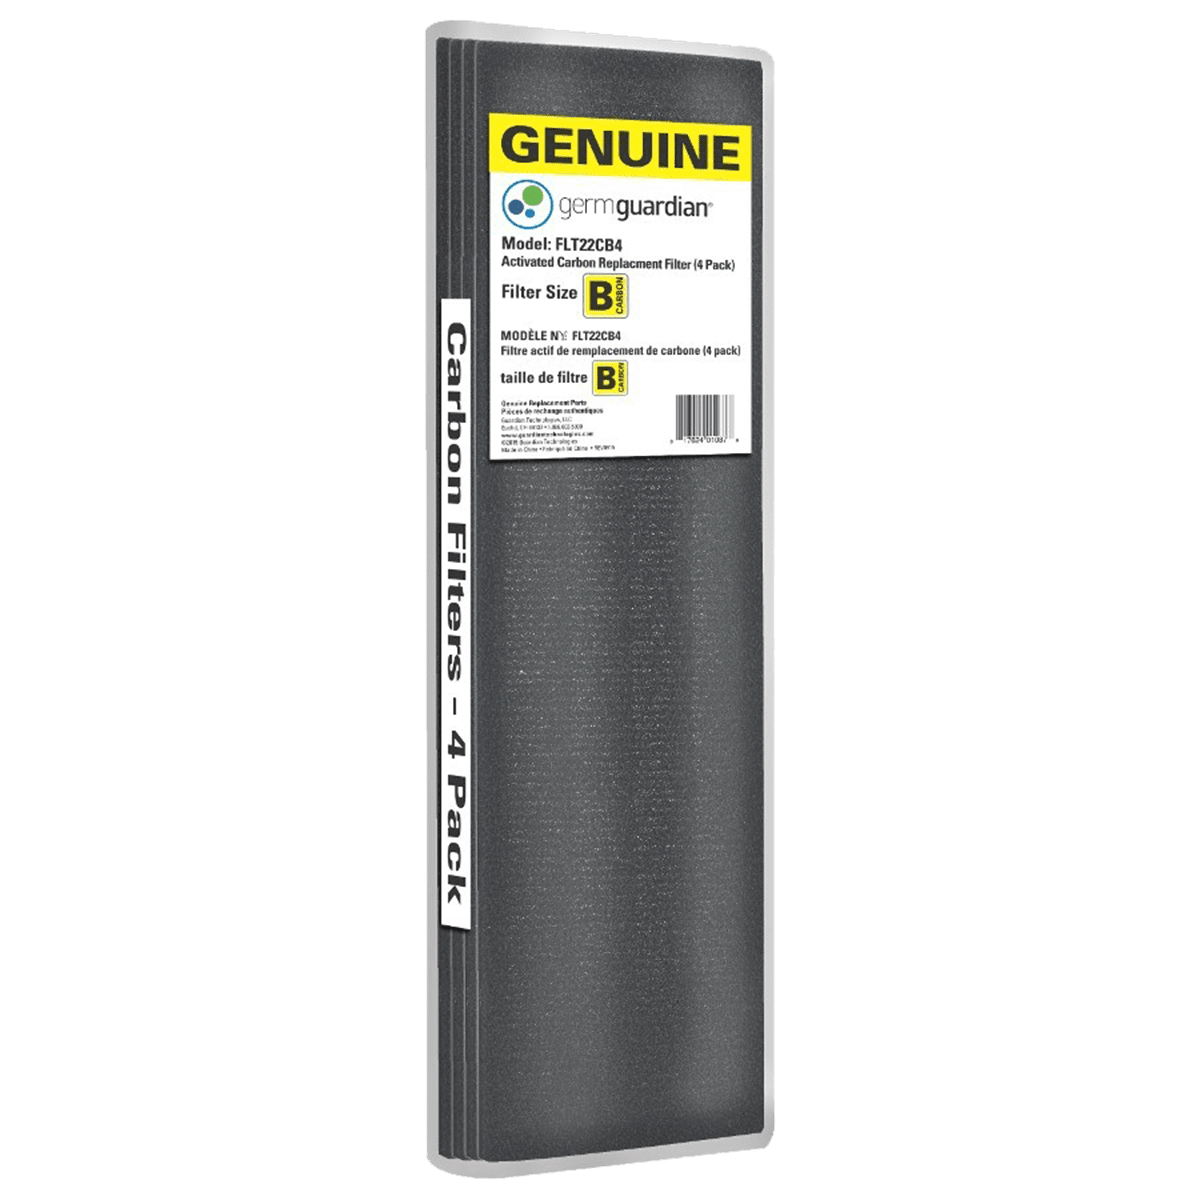 GermGuardian 4-Pack Carbon Filters for 22-Inch Air Purifiers